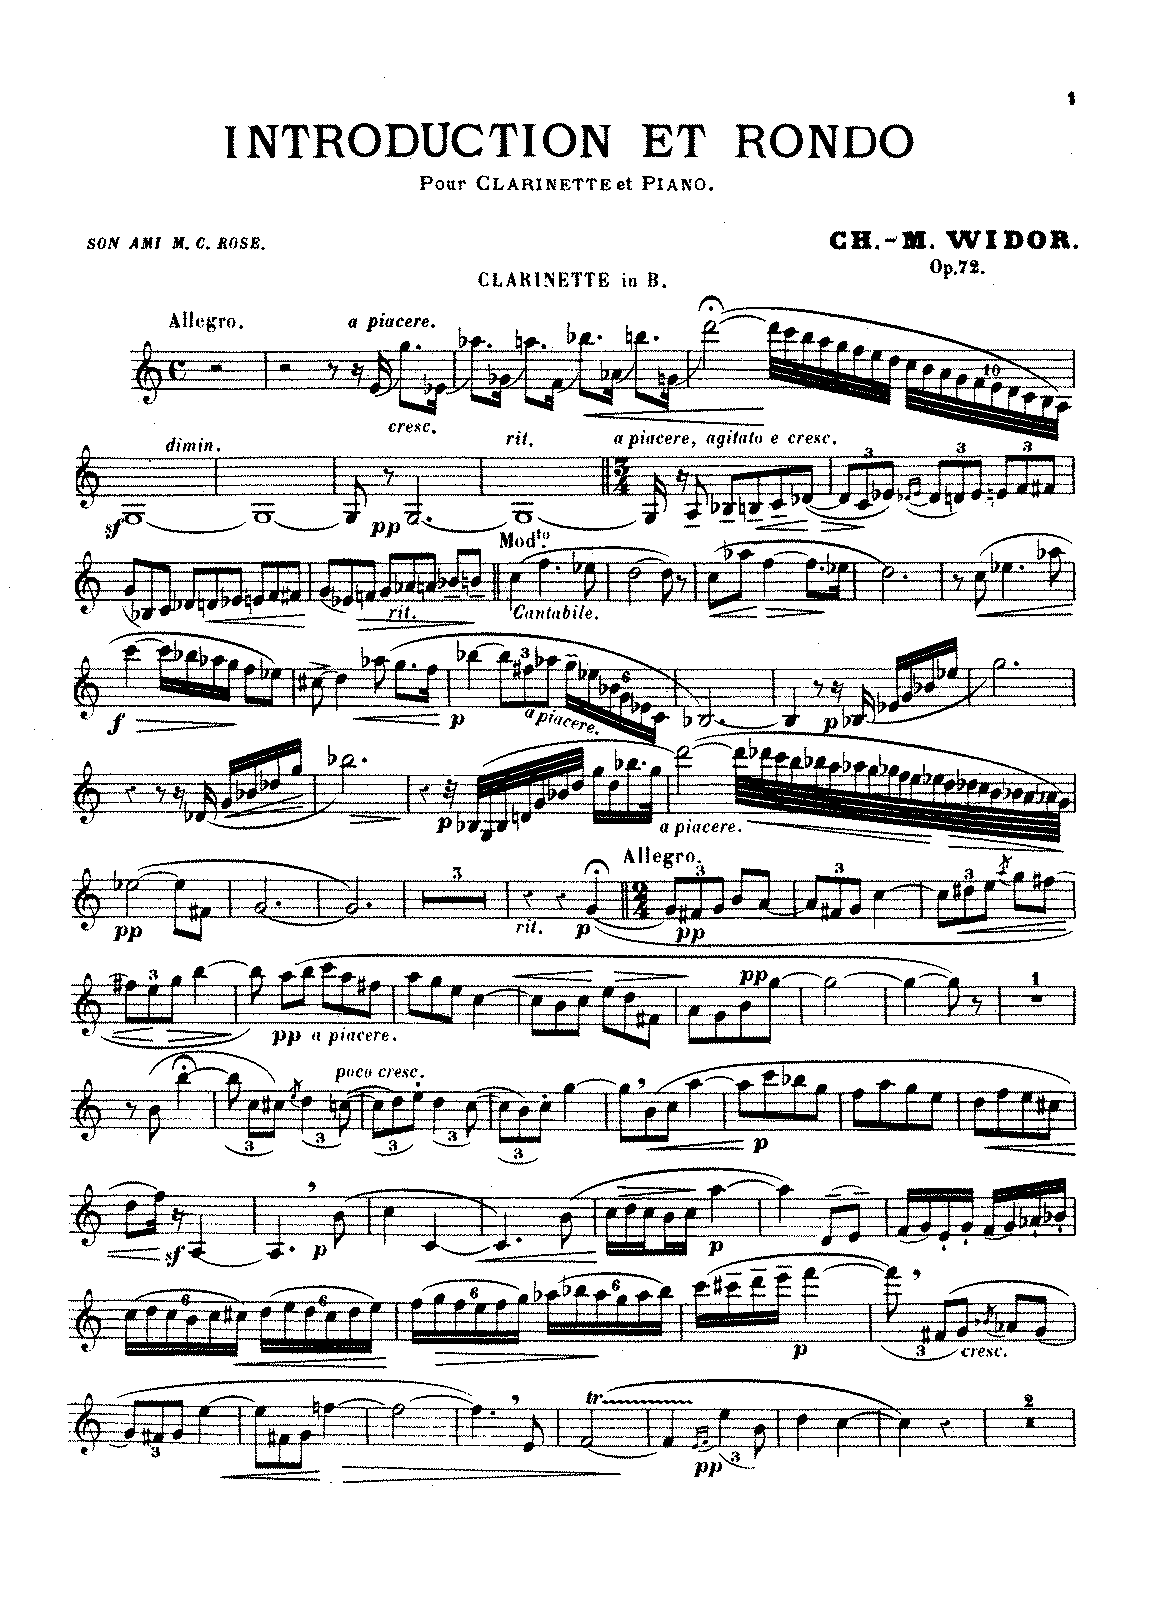 PMLP111742-Widor - Introduction et Rondo, Op. 72 (clarinet and piano).pdf